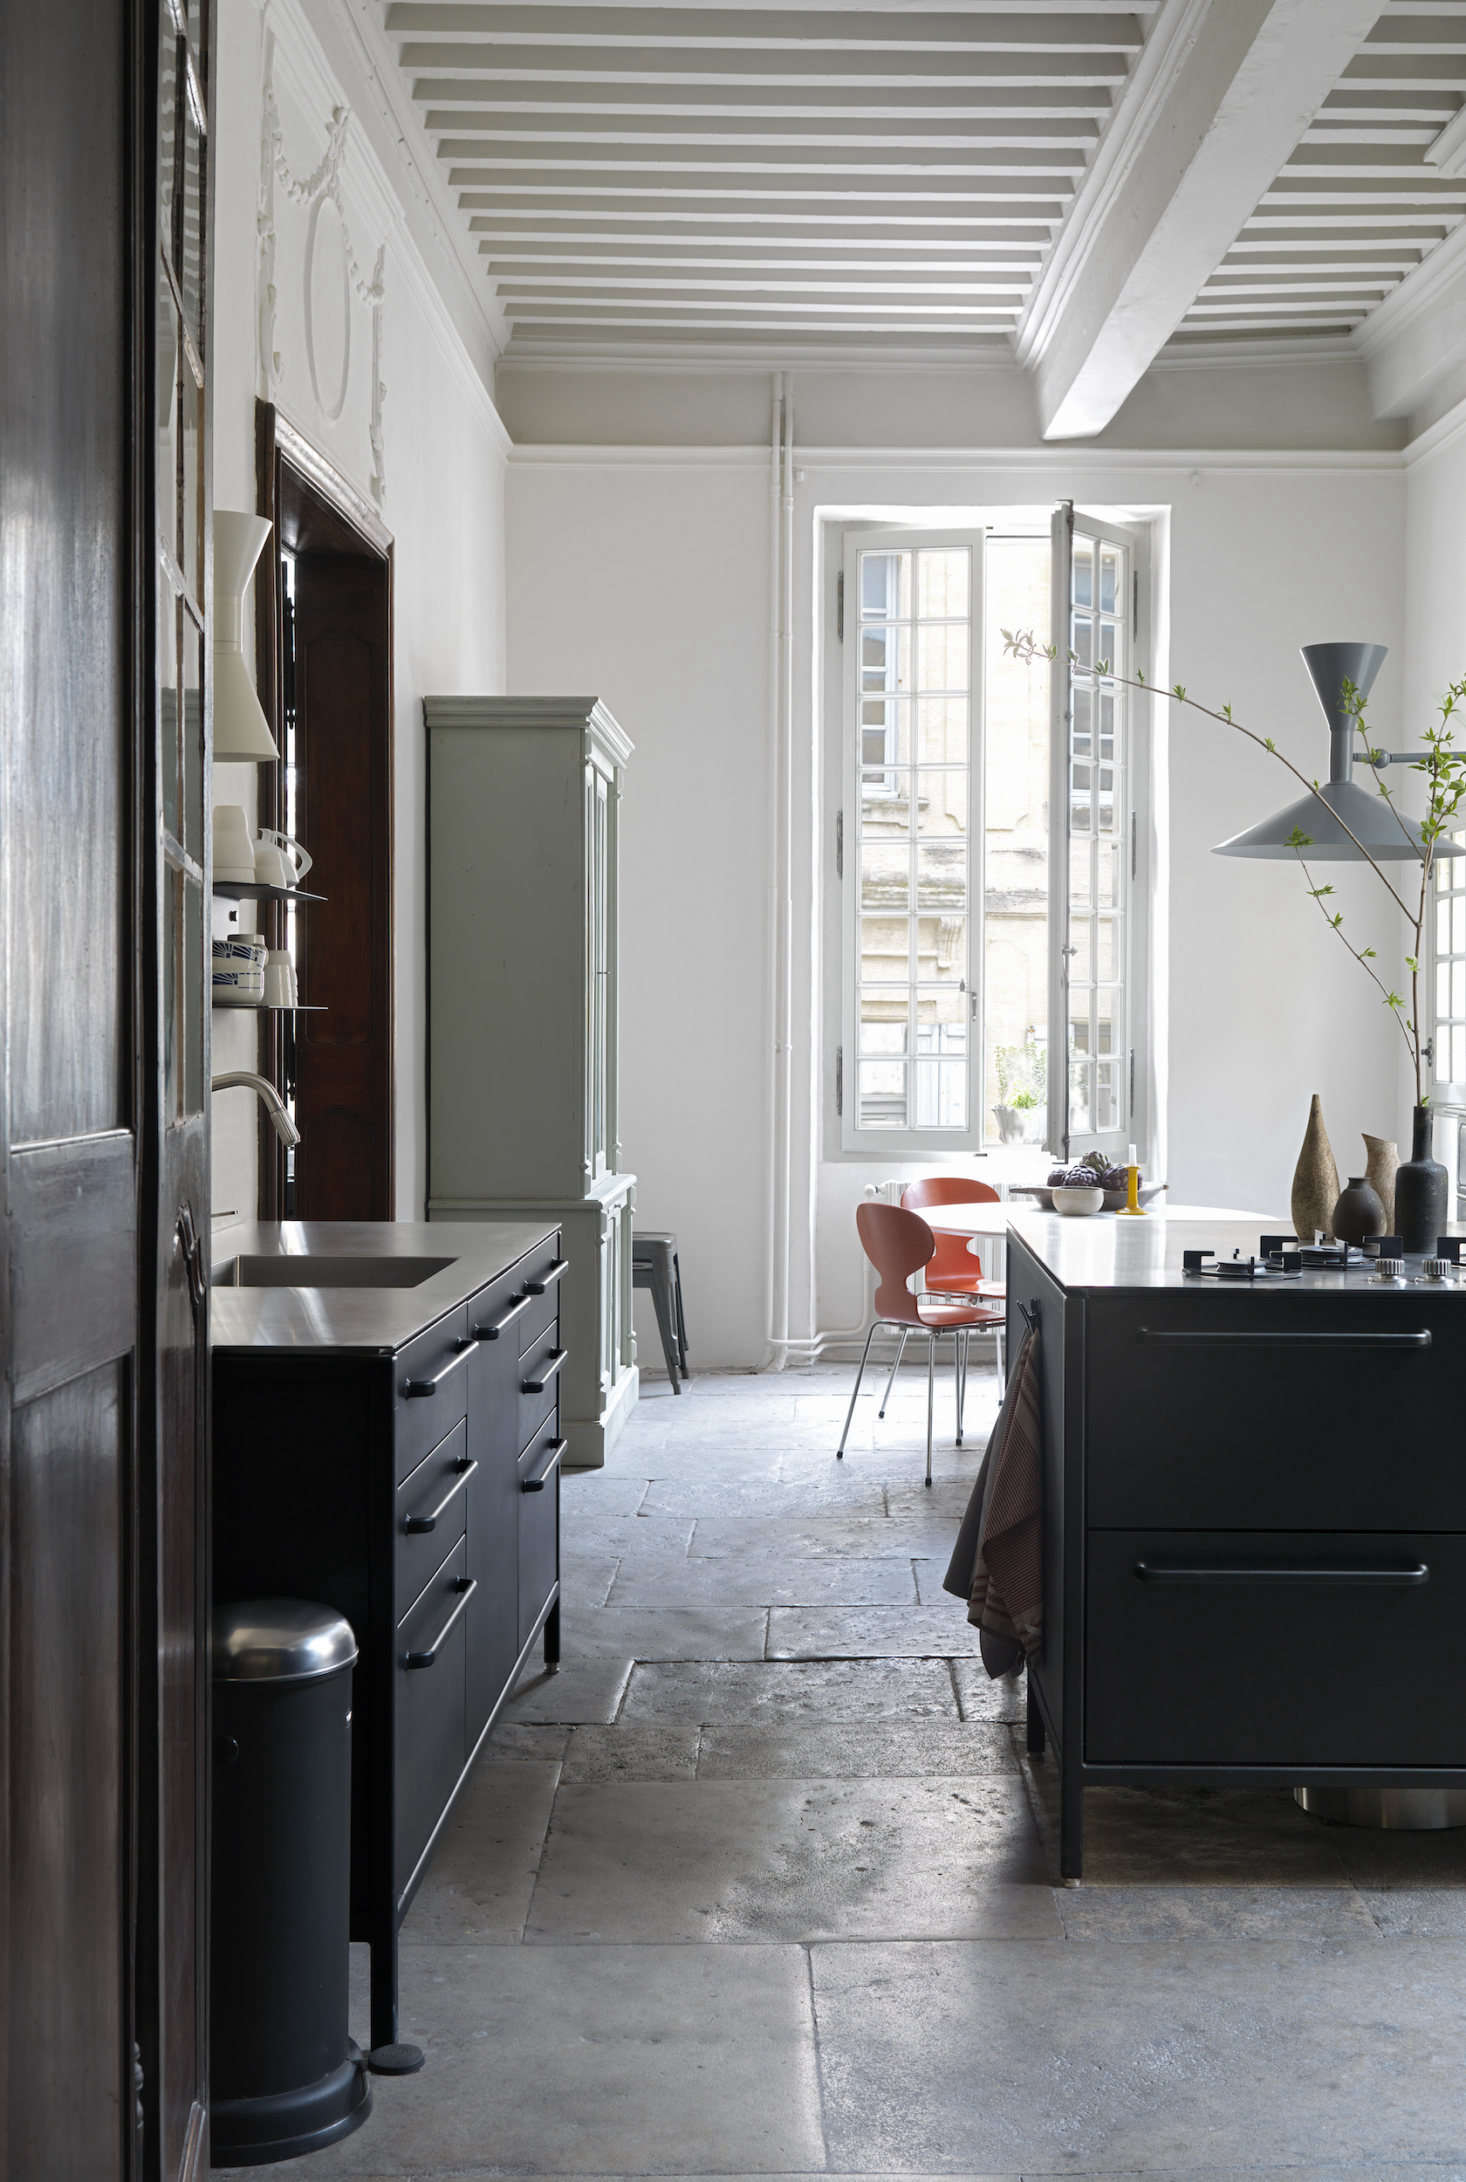 A vintage painted hutch offers a warm contrast in the kitchen. Note the -foot-high ceiling.